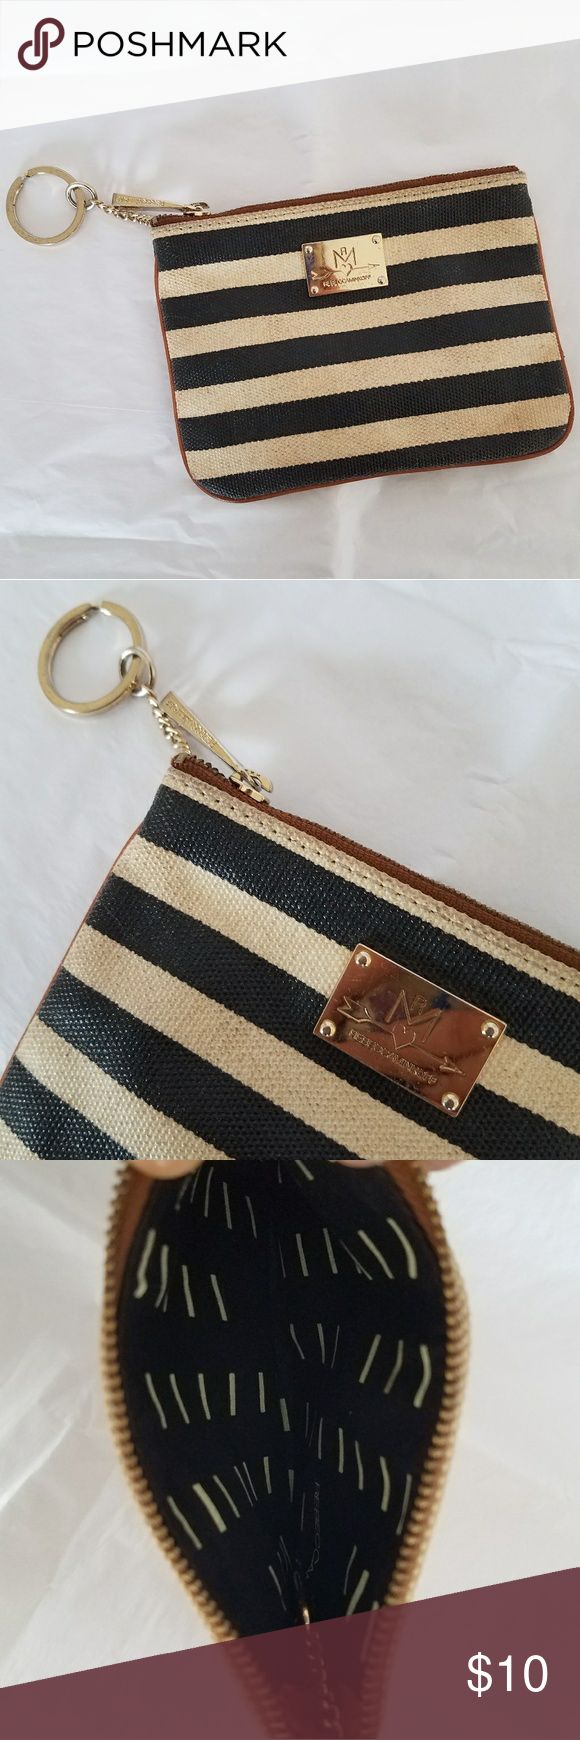 { 3/$10 SALE } Rebecca Minkoff || Keychain Wallet Preloved condition but a lot of life left. Gices it a vintage vibe! Cream, navy blue,  brown, gold.   Please view photos, description and measurements. I DO NOT TRADE. Rebecca Minkoff Bags Clutches & Wristlets